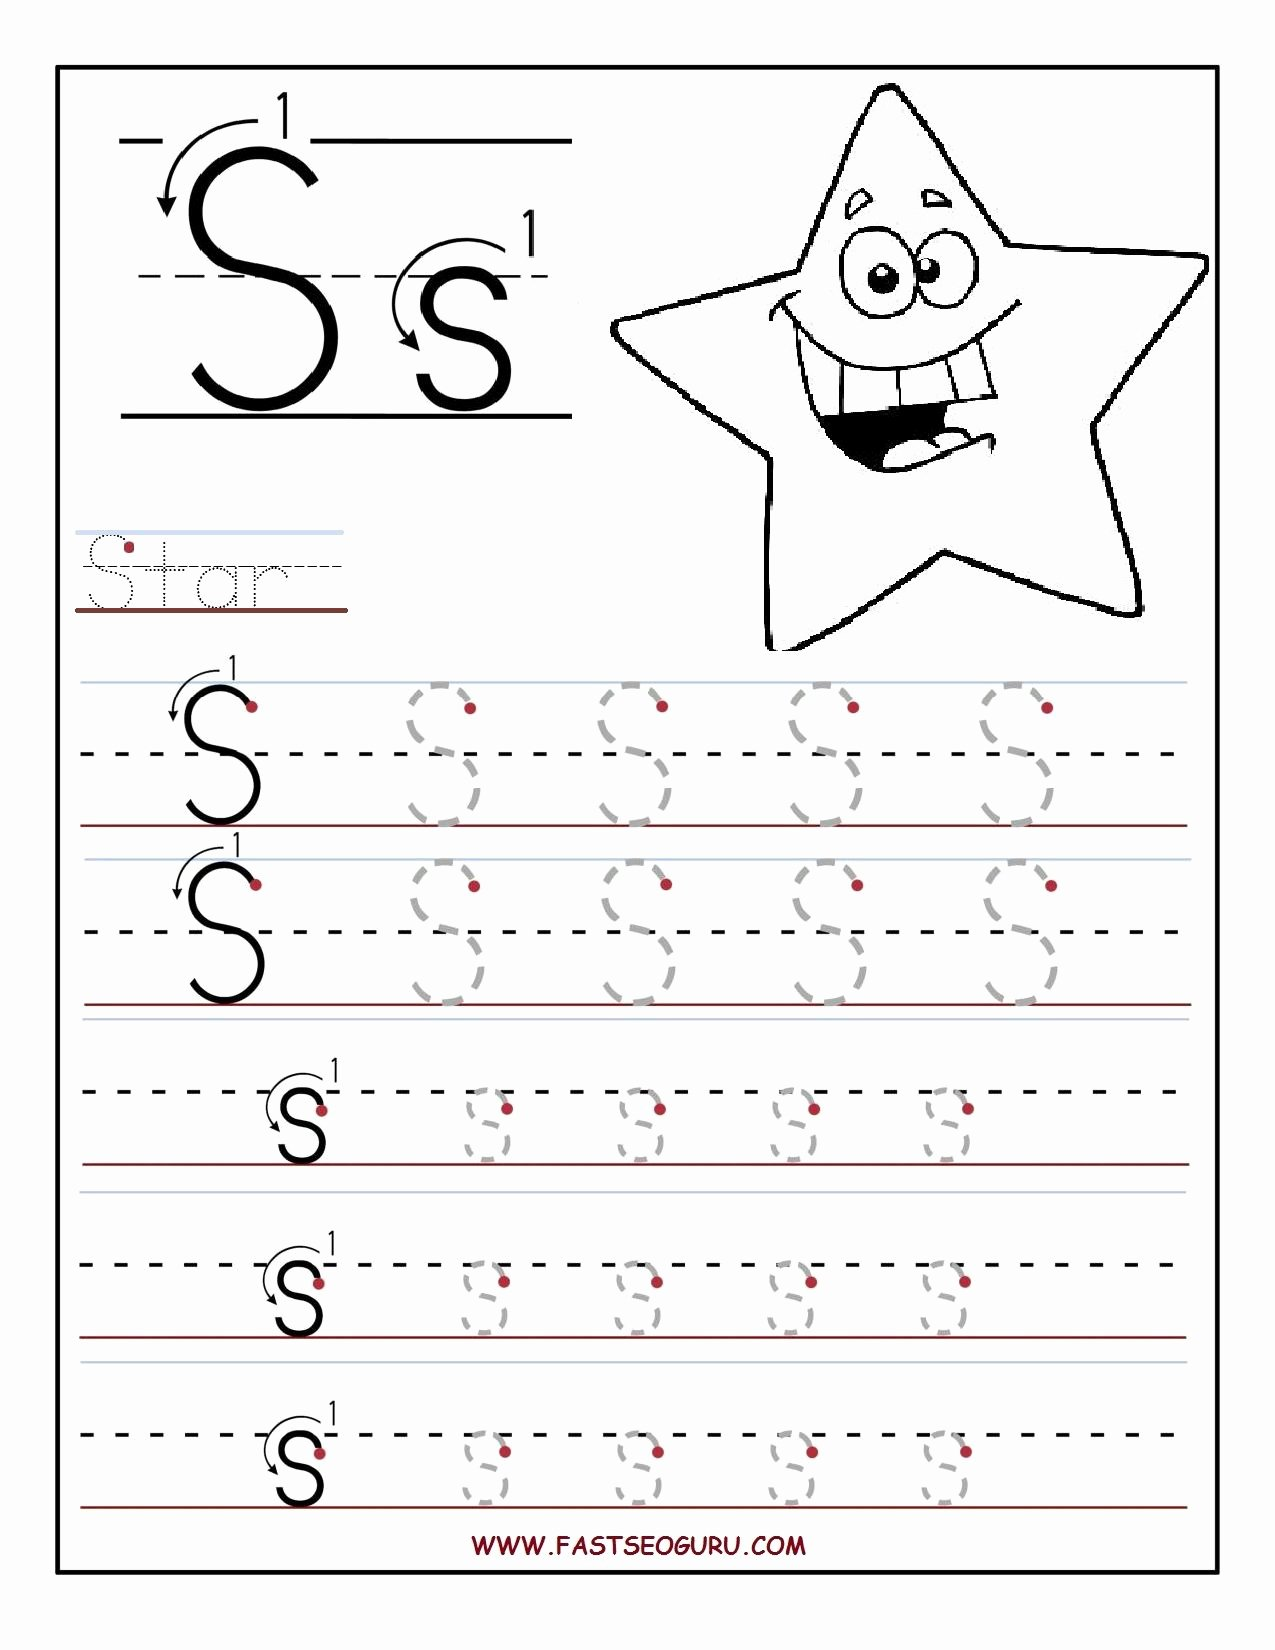 Free Printable Letter S Worksheets for Preschoolers Kids Printable Letter S Tracing Worksheets for Preschool